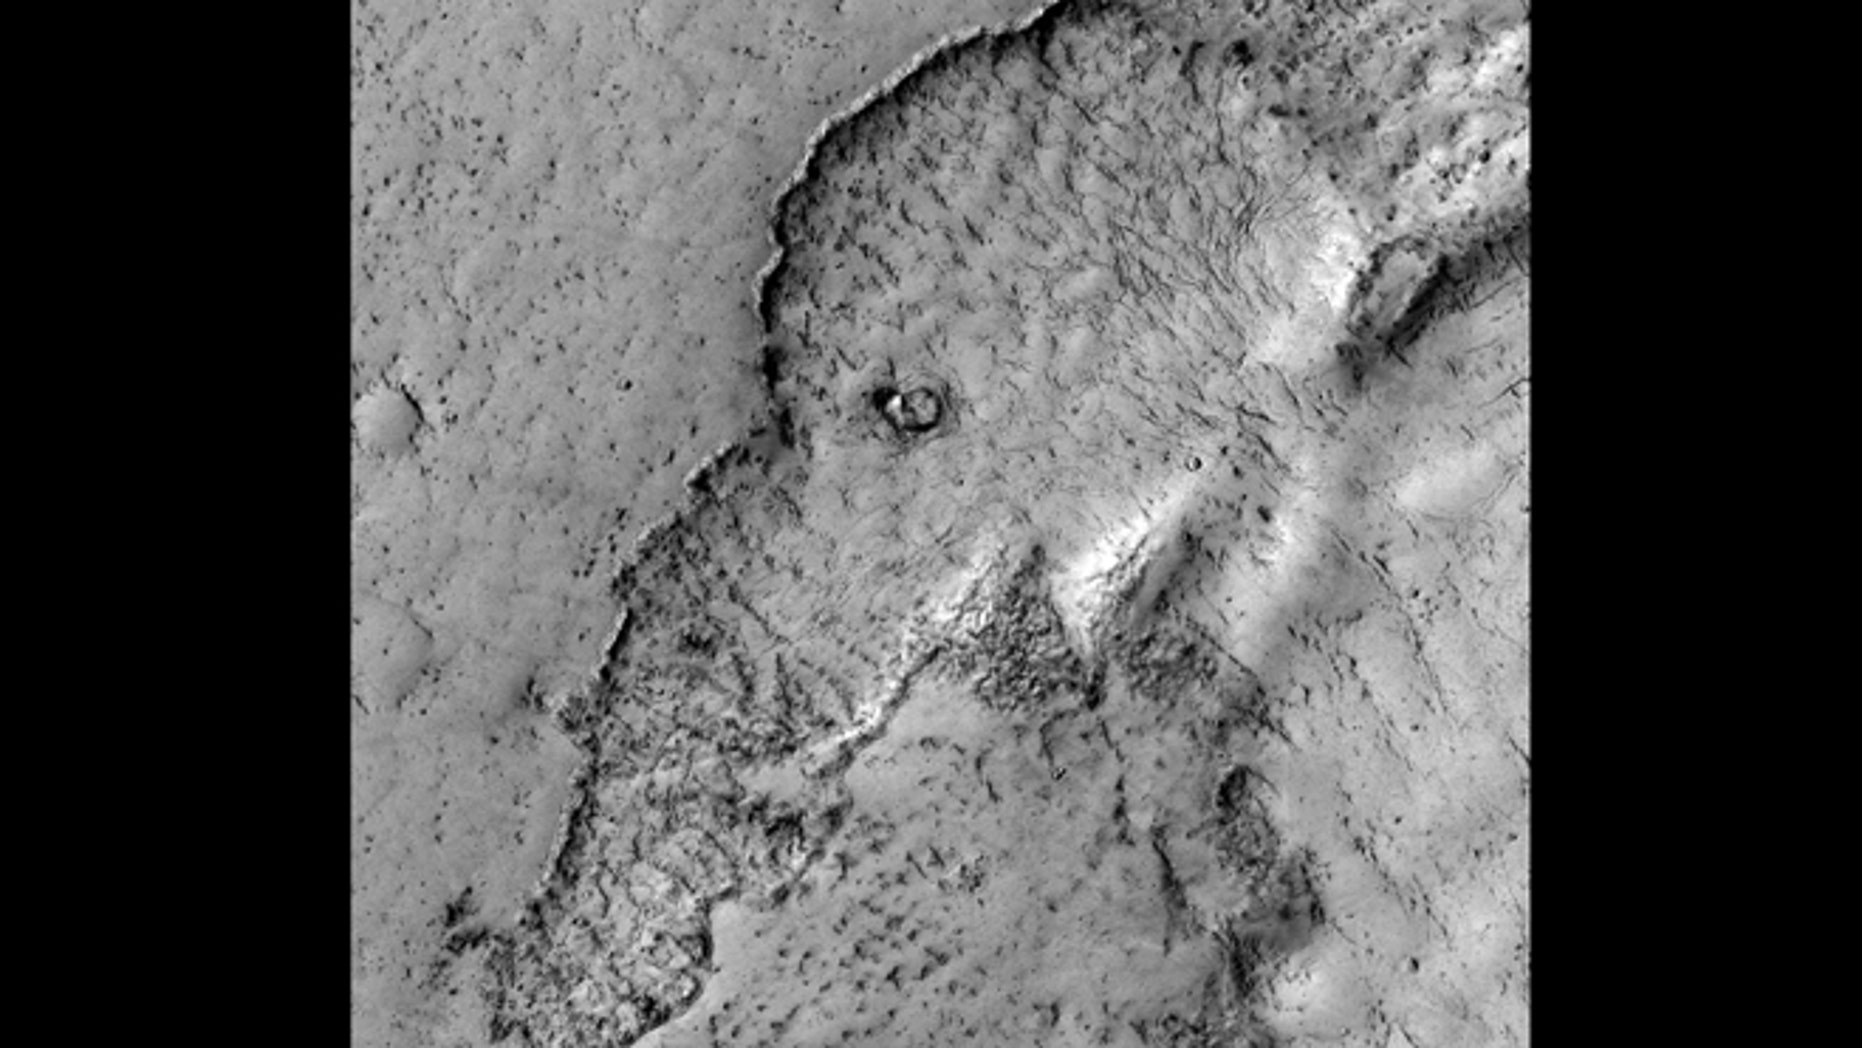 Apr. 4, 2012: This observation highlights Martian terrain that looks like an elephant. Actually, this image covers the margin of a lava flow in Elysium Planitia, the youngest flood-lava province on Mars. Flood lavas cover extensive areas, and were once thought to be emplaced extremely rapidly, like a flood of water.